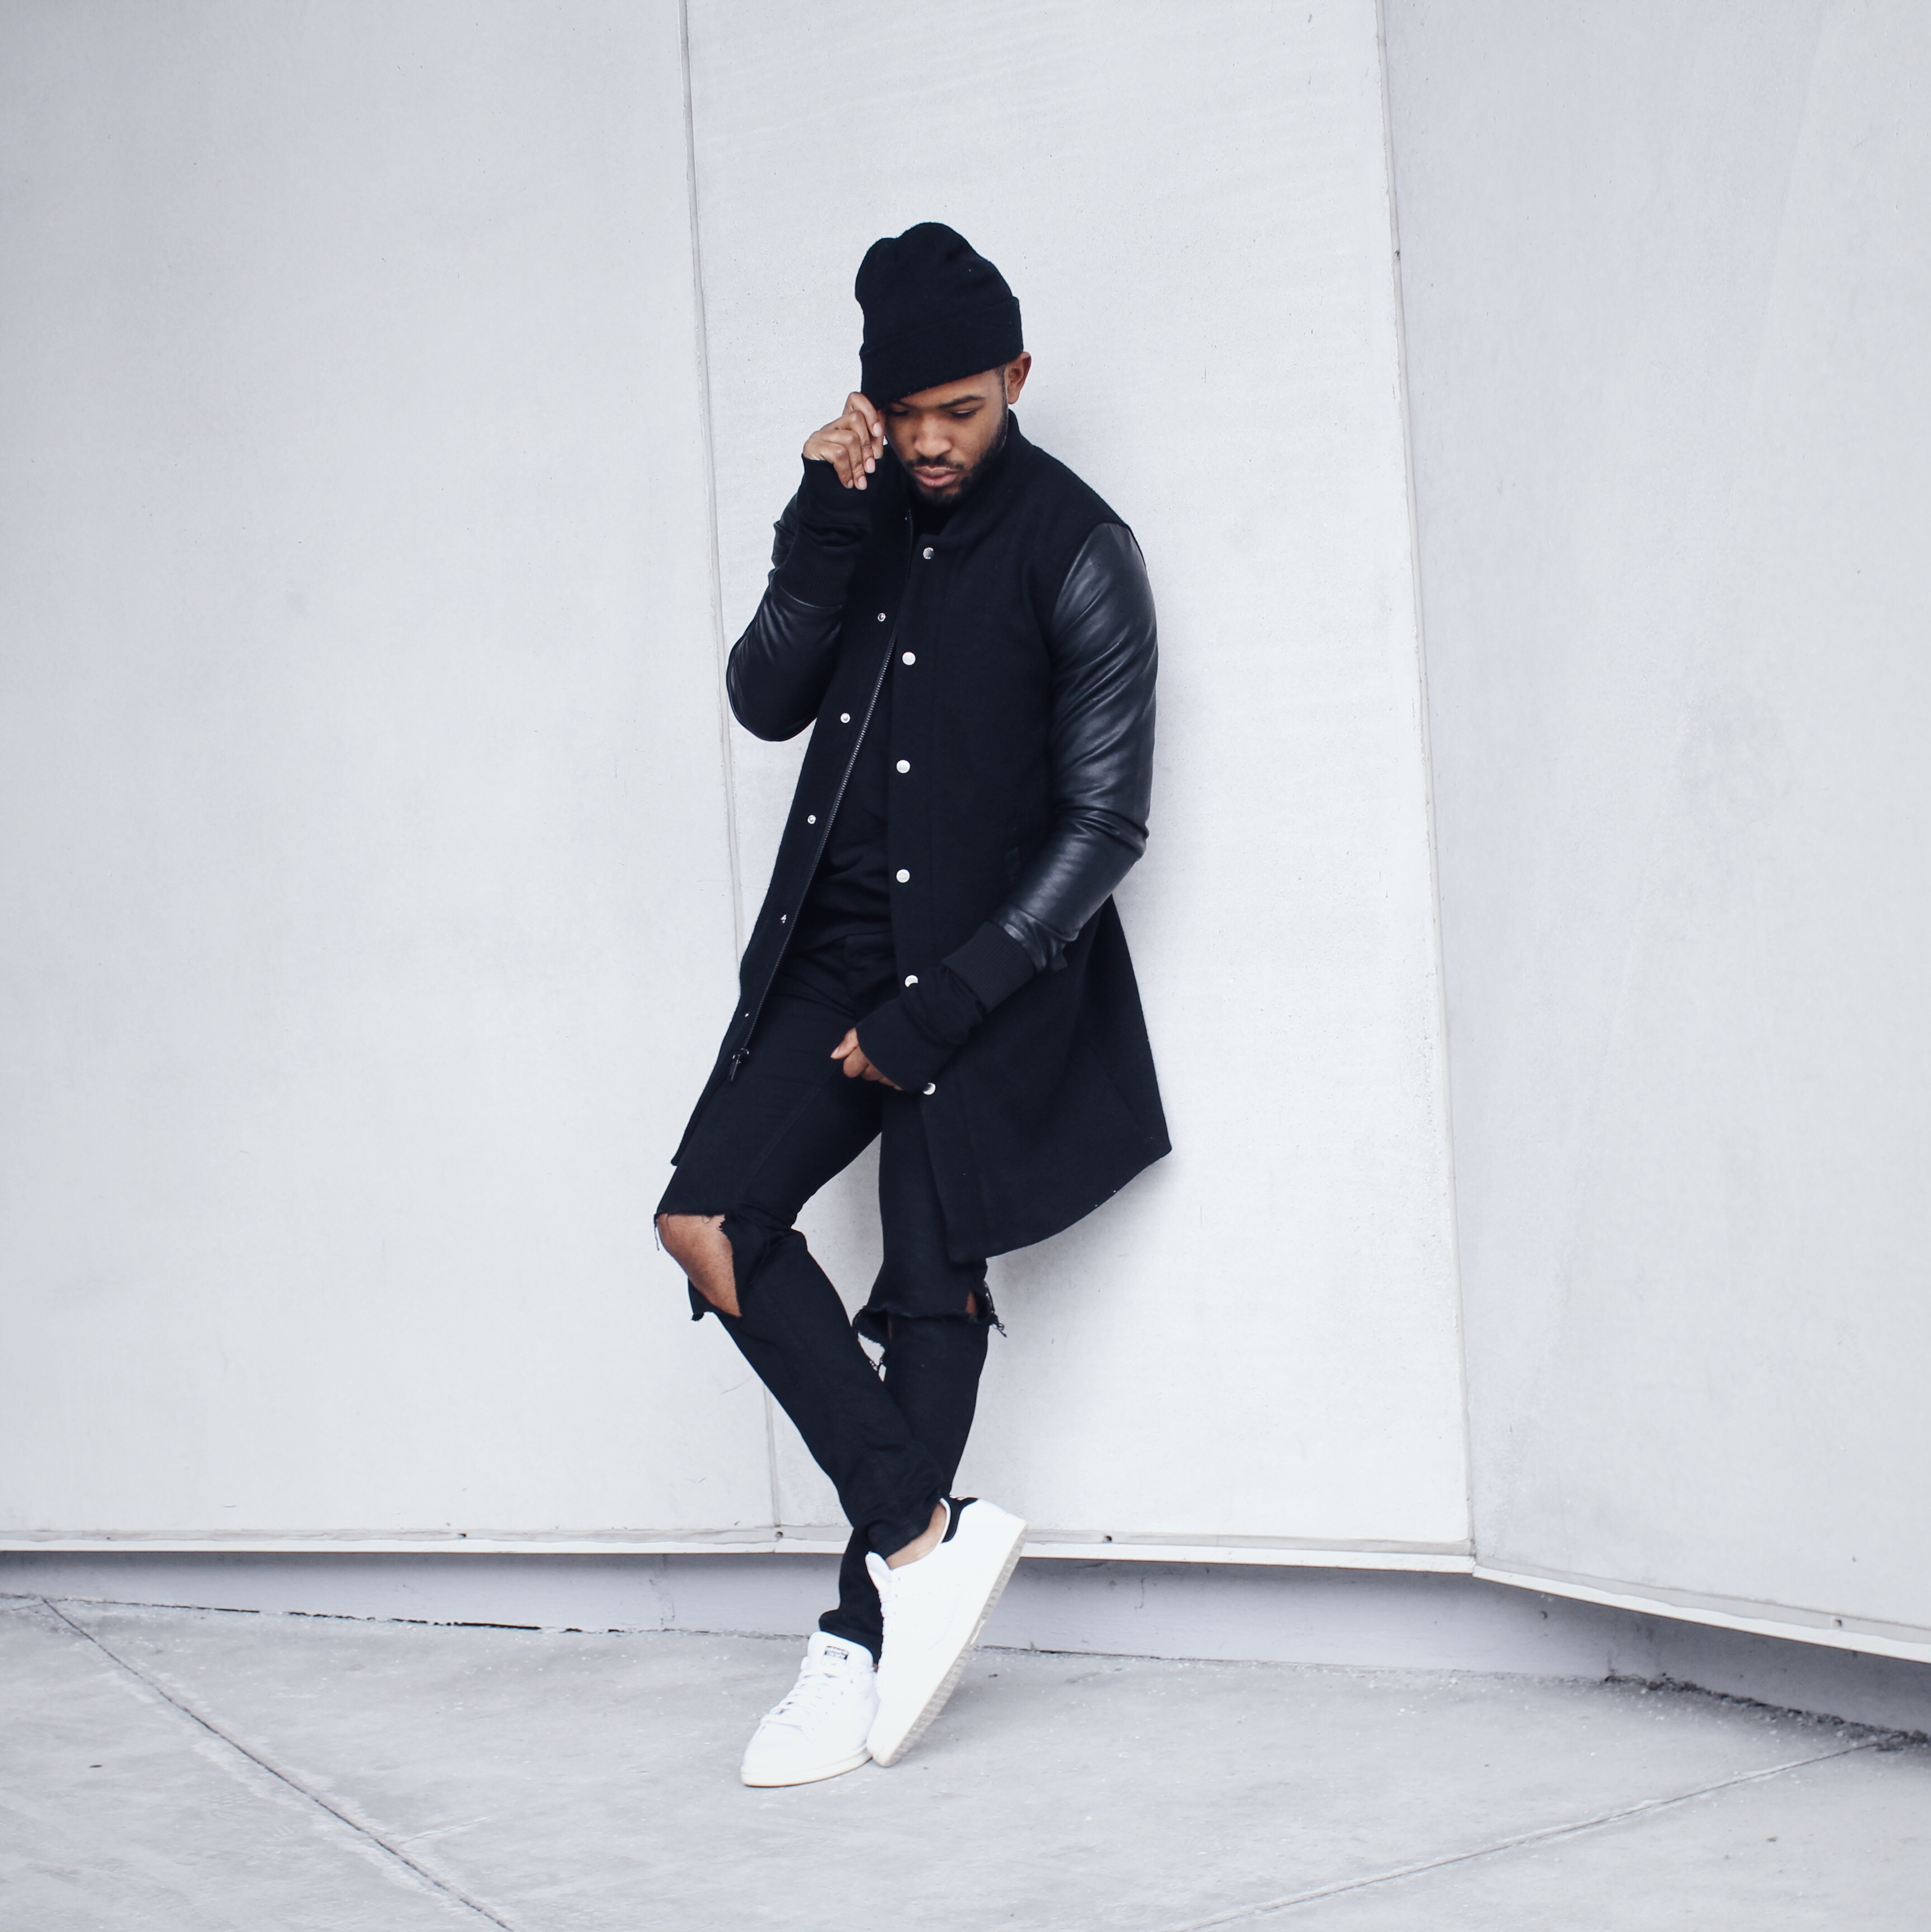 monochrome vibes | christian confidential